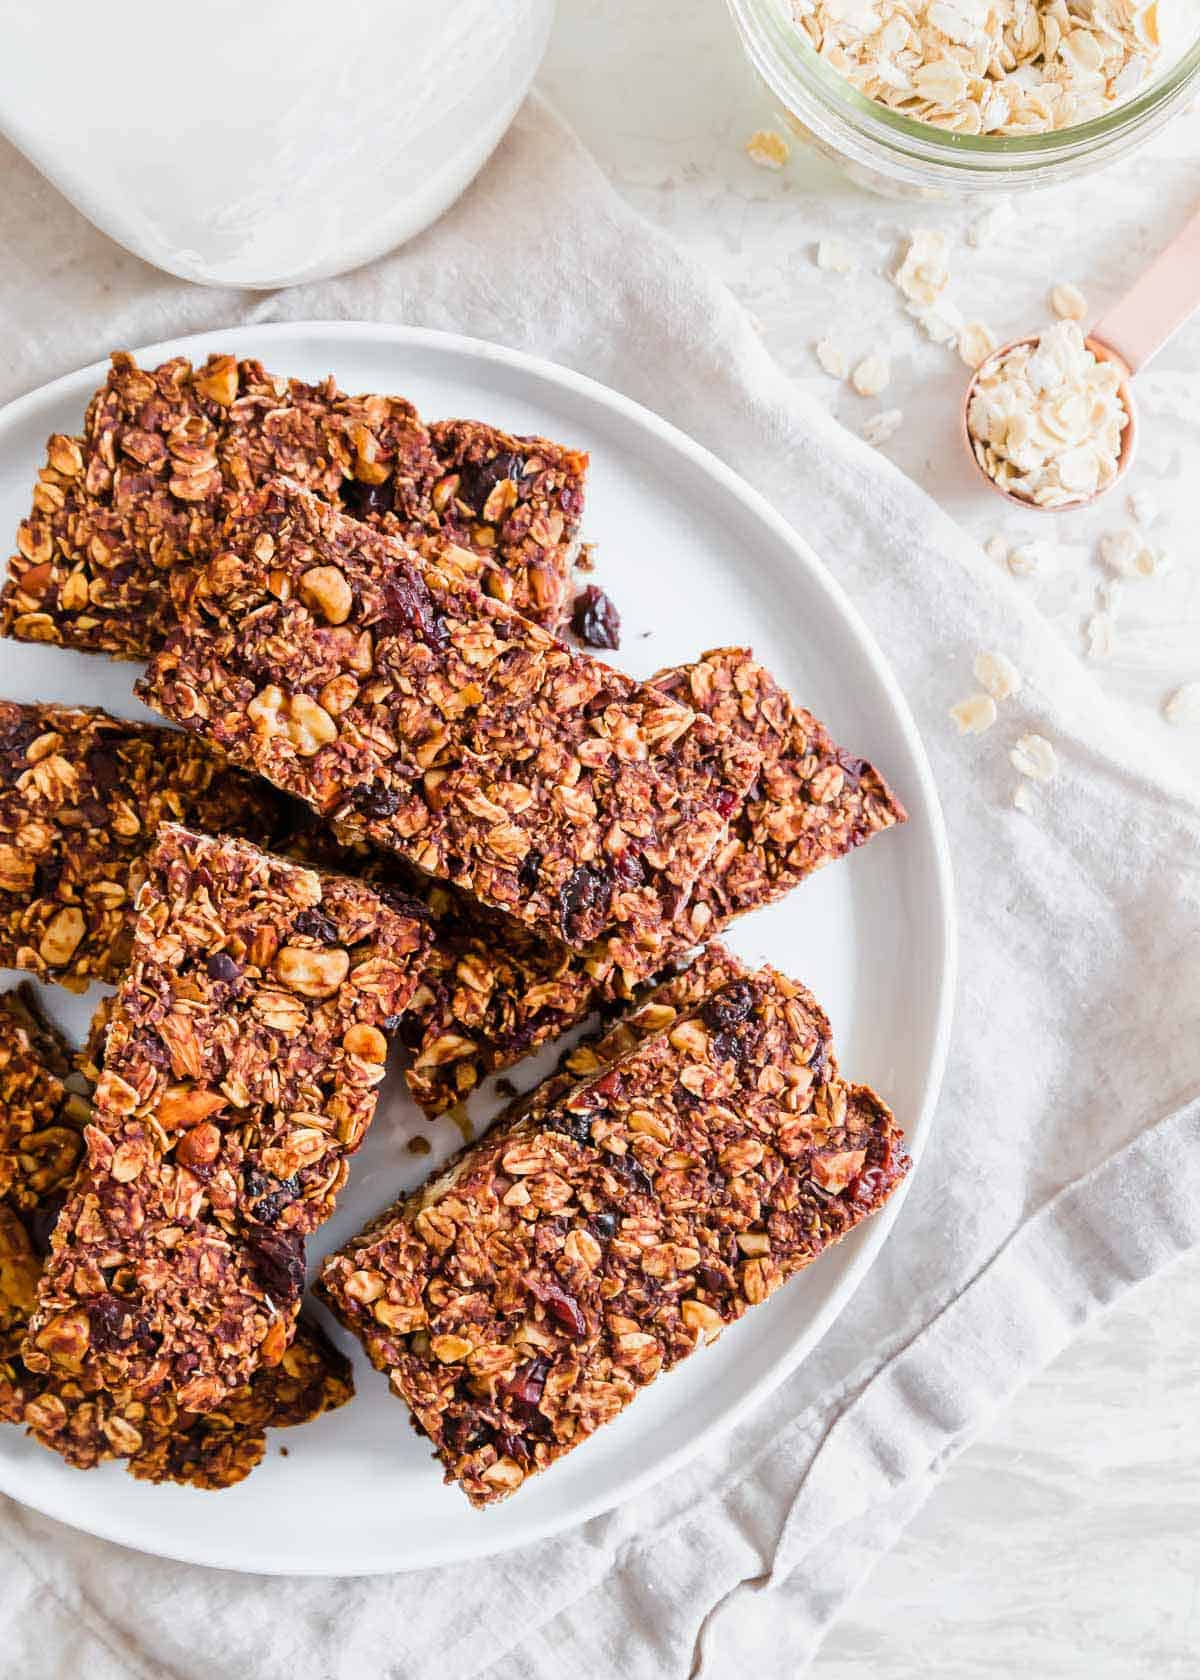 Healthy, oat-based and with no added sugar, these chocolate granola bars can be customized to your liking with add-ins for a nutritious gluten-free snack.